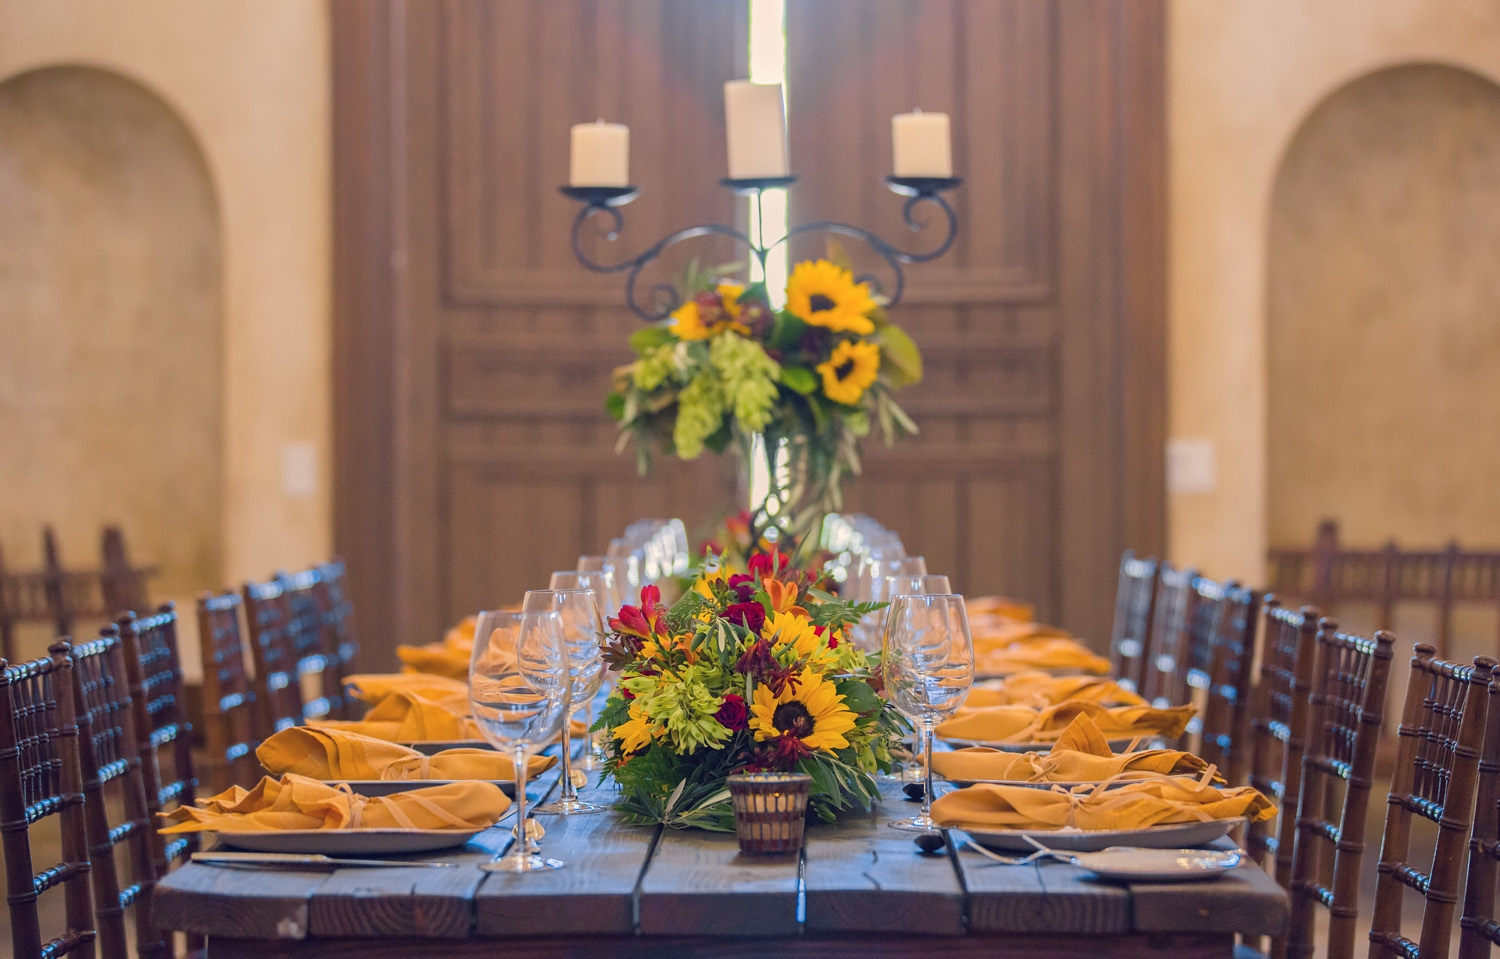 Private dining room area with sunflower center pieces at Allegre